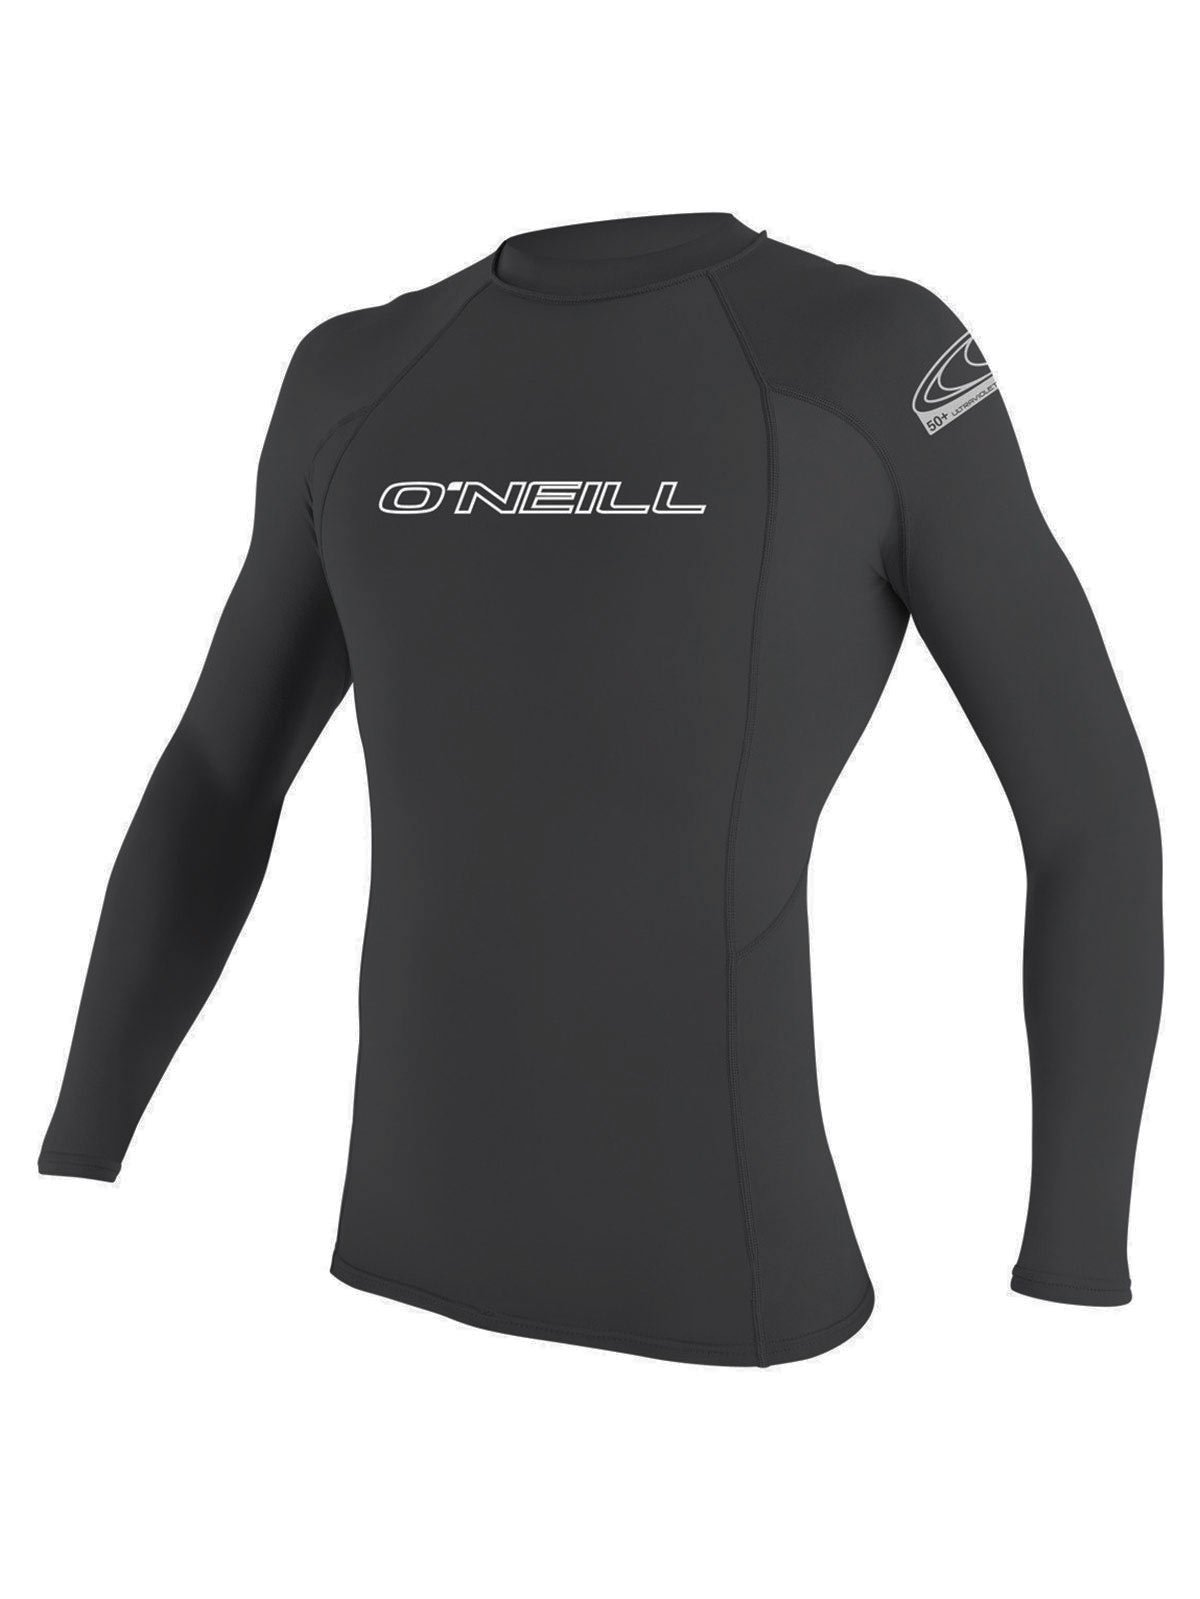 O'Neill men's basic skins long sleeve rashguard L Graphite (3342IS) by O'Neill Wetsuits